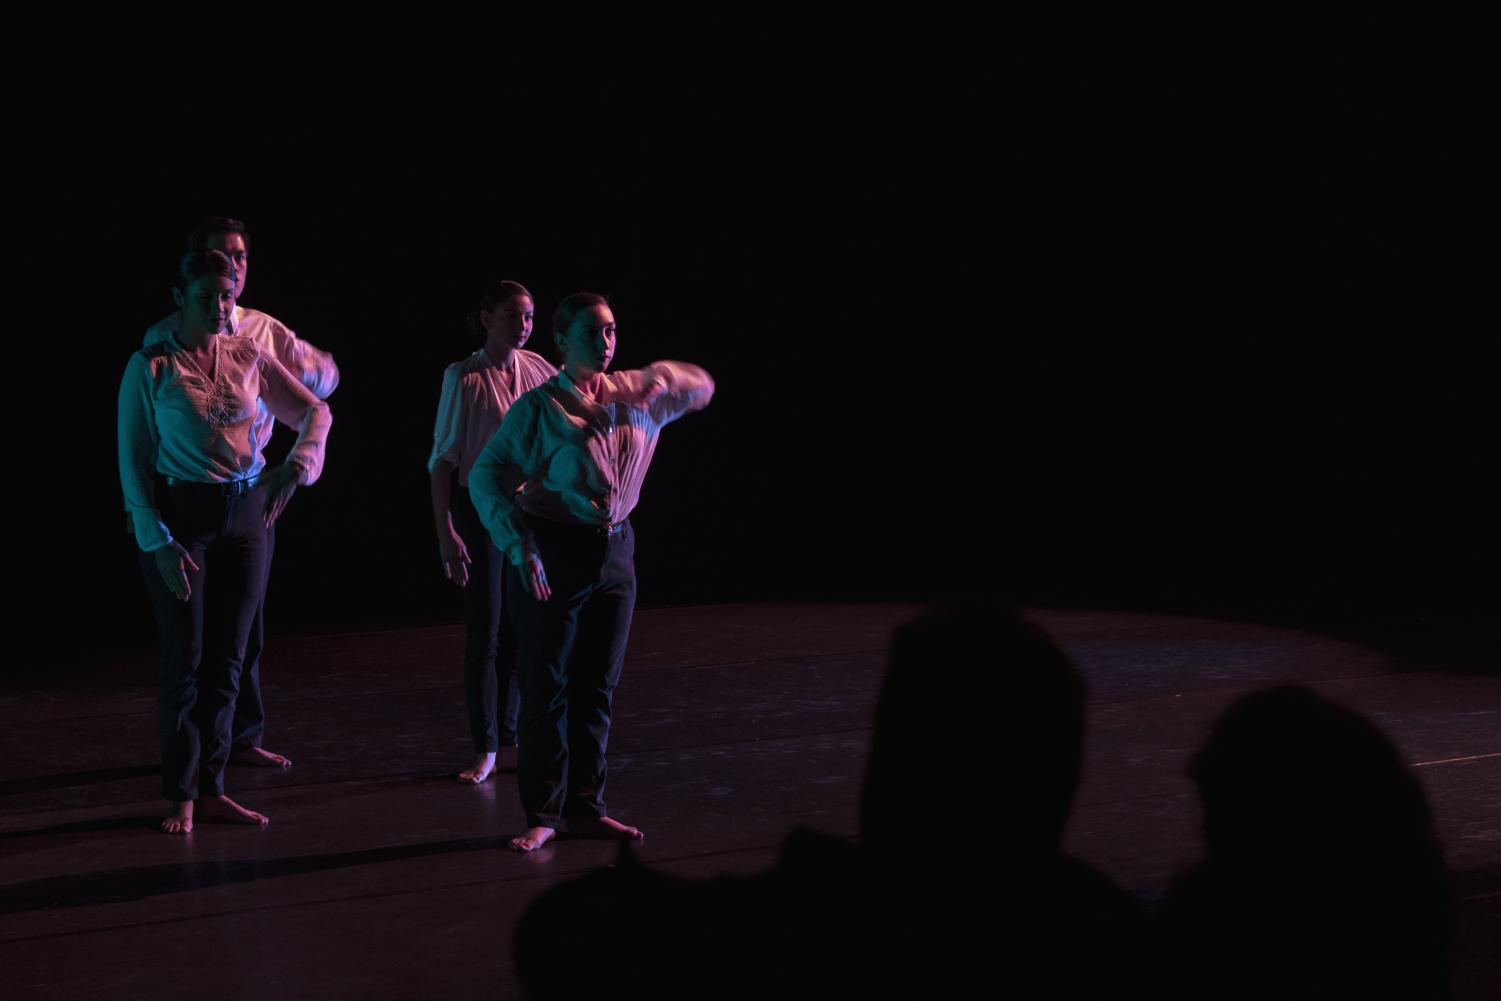 The Turn dance choreographed by Jessica Harper being performed at the Intimate Theatre at the Luckman during the Spring Dance Concert last Friday at Cal State L.A.